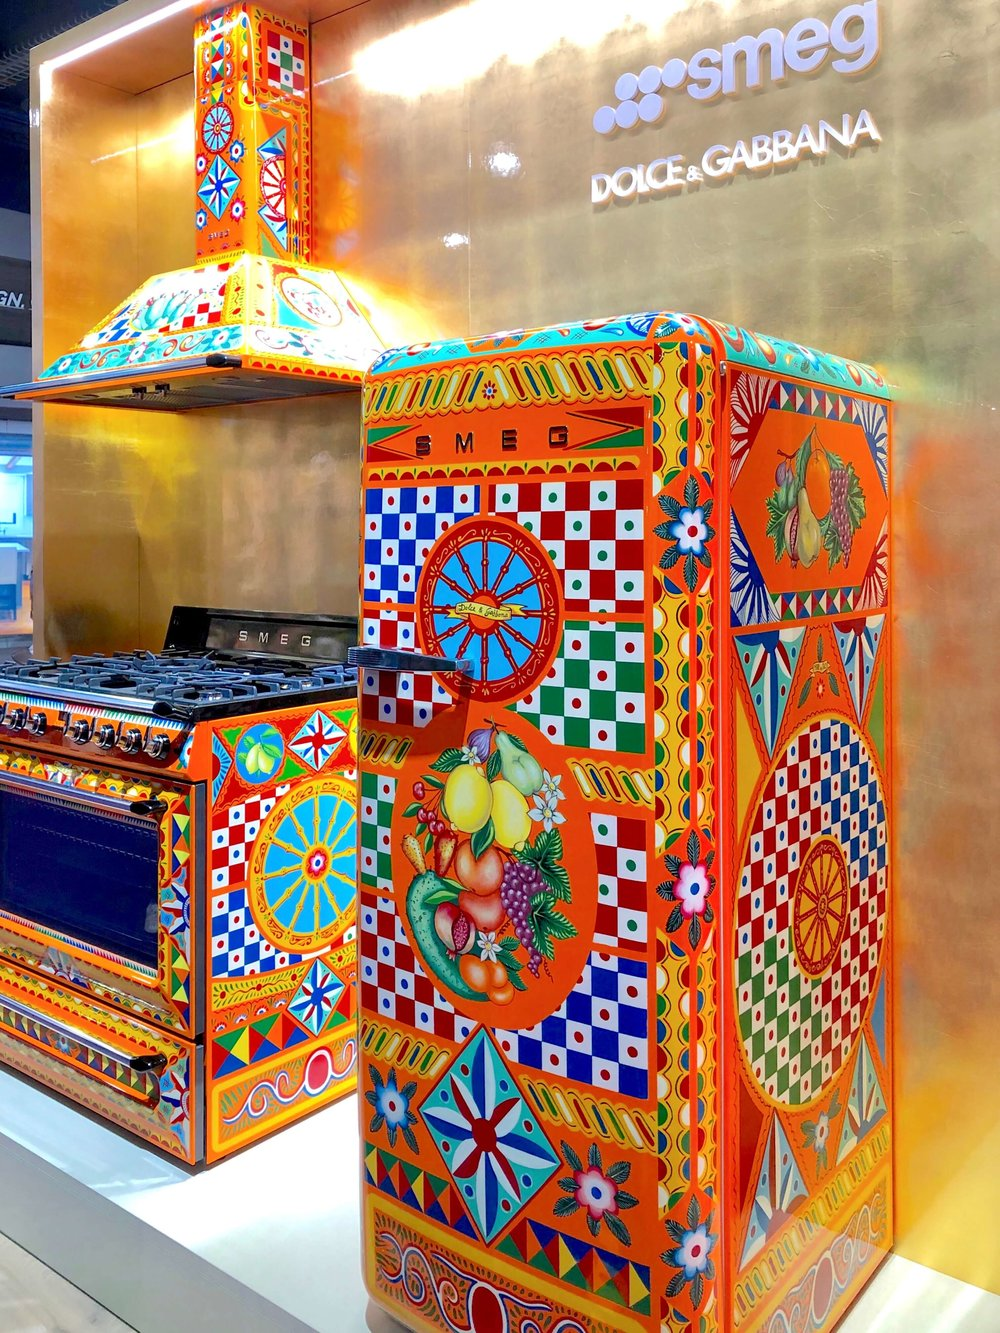 Colorful Smeg Appliances by Dolce & Gabanna, KBIS 2019